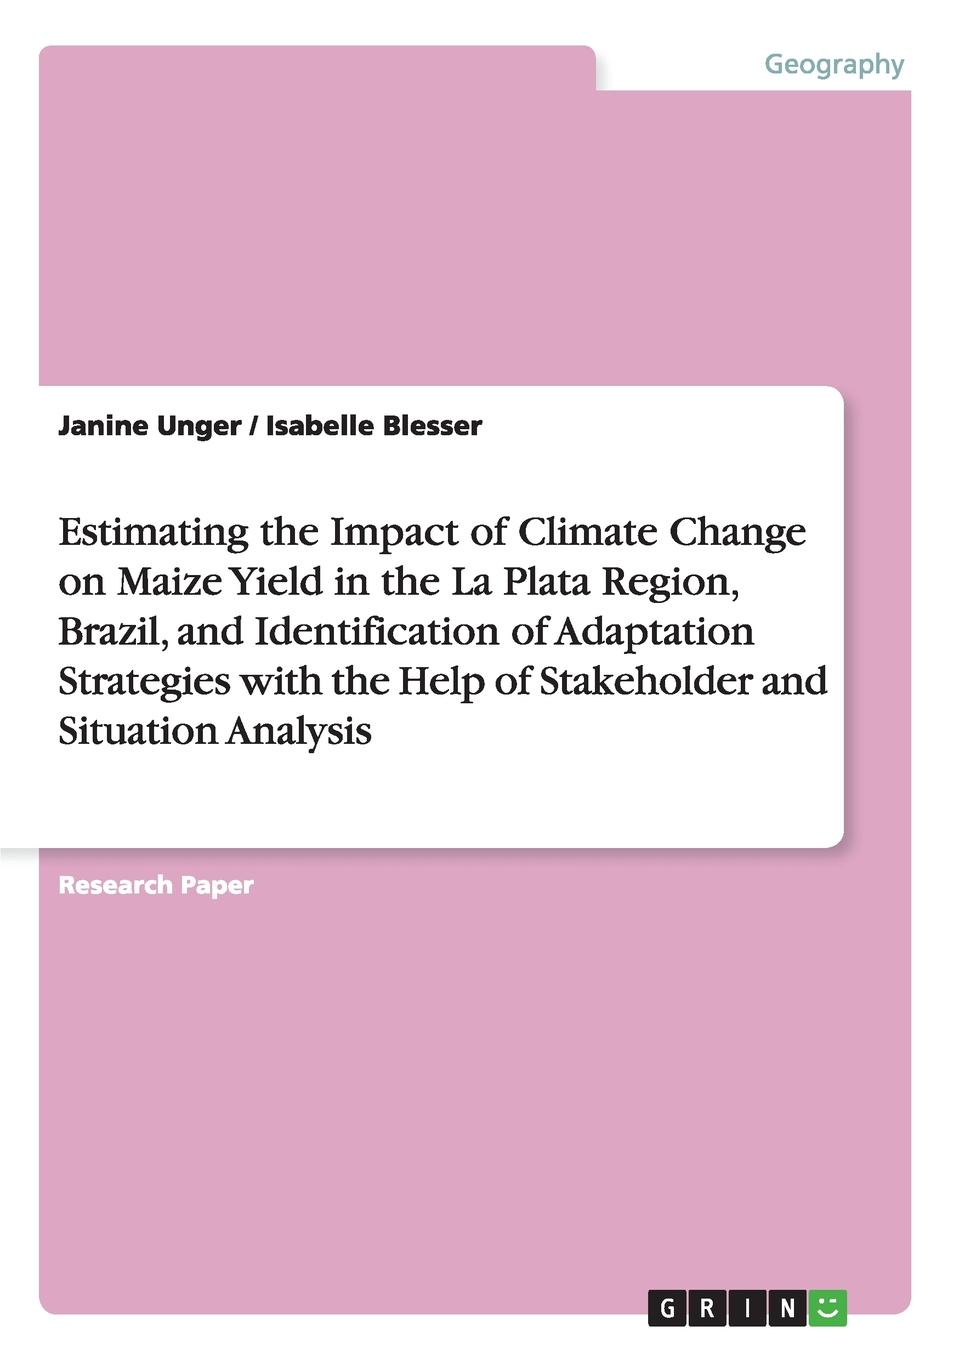 Janine Unger, Isabelle Blesser Estimating the Impact of Climate Change on Maize Yield in the La Plata Region, Brazil, and Identification of Adaptation Strategies with the Help of Stakeholder and Situation Analysis economic adaptation to climate change